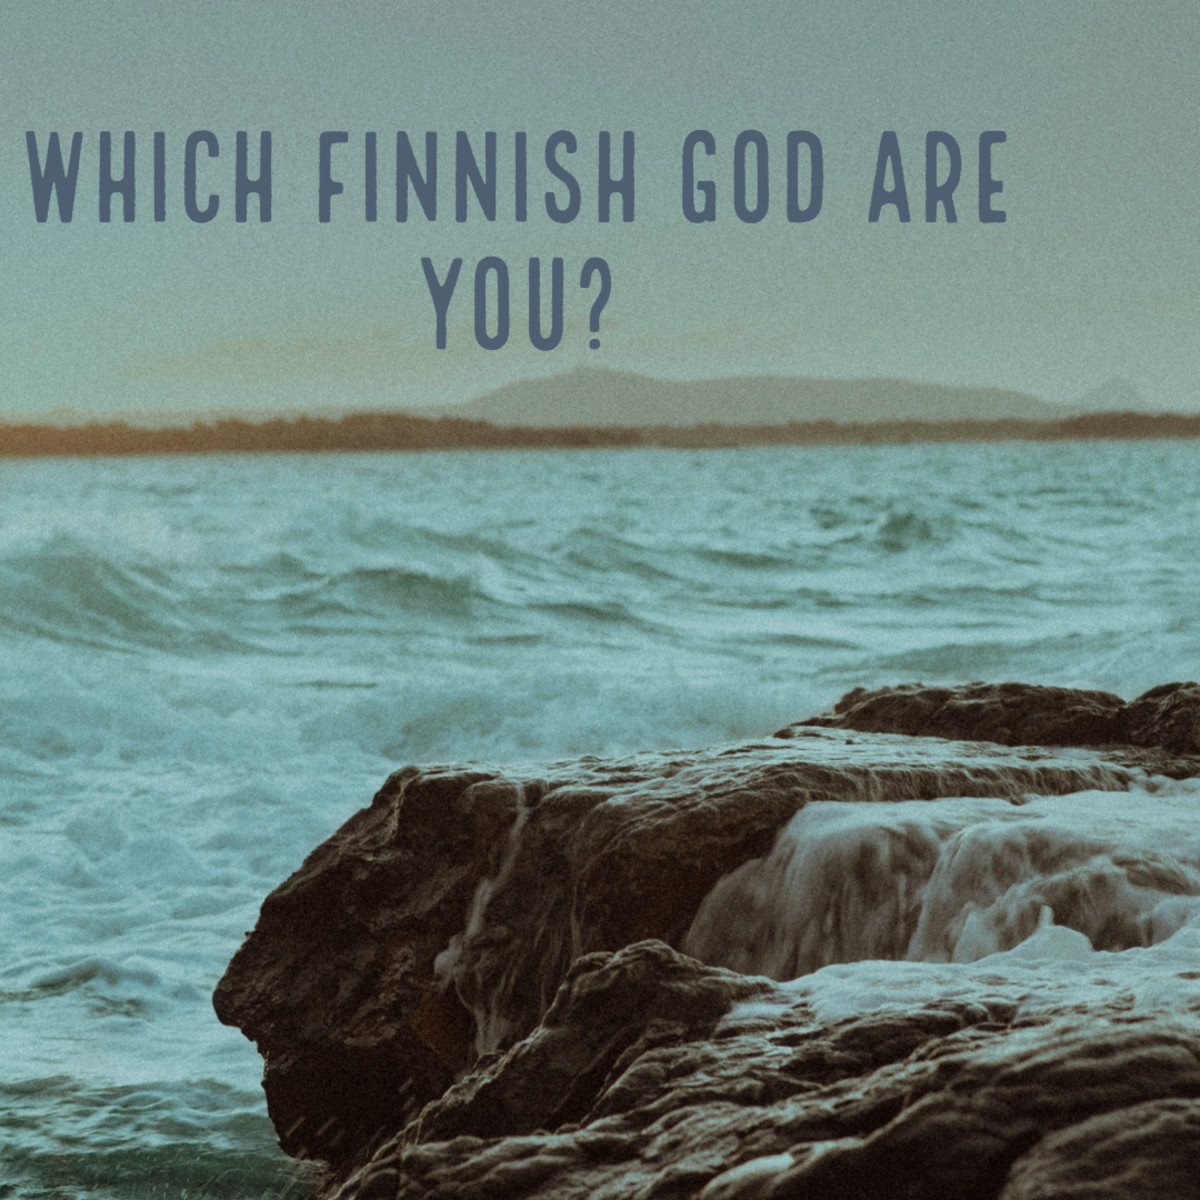 Which Finnish God Are You?